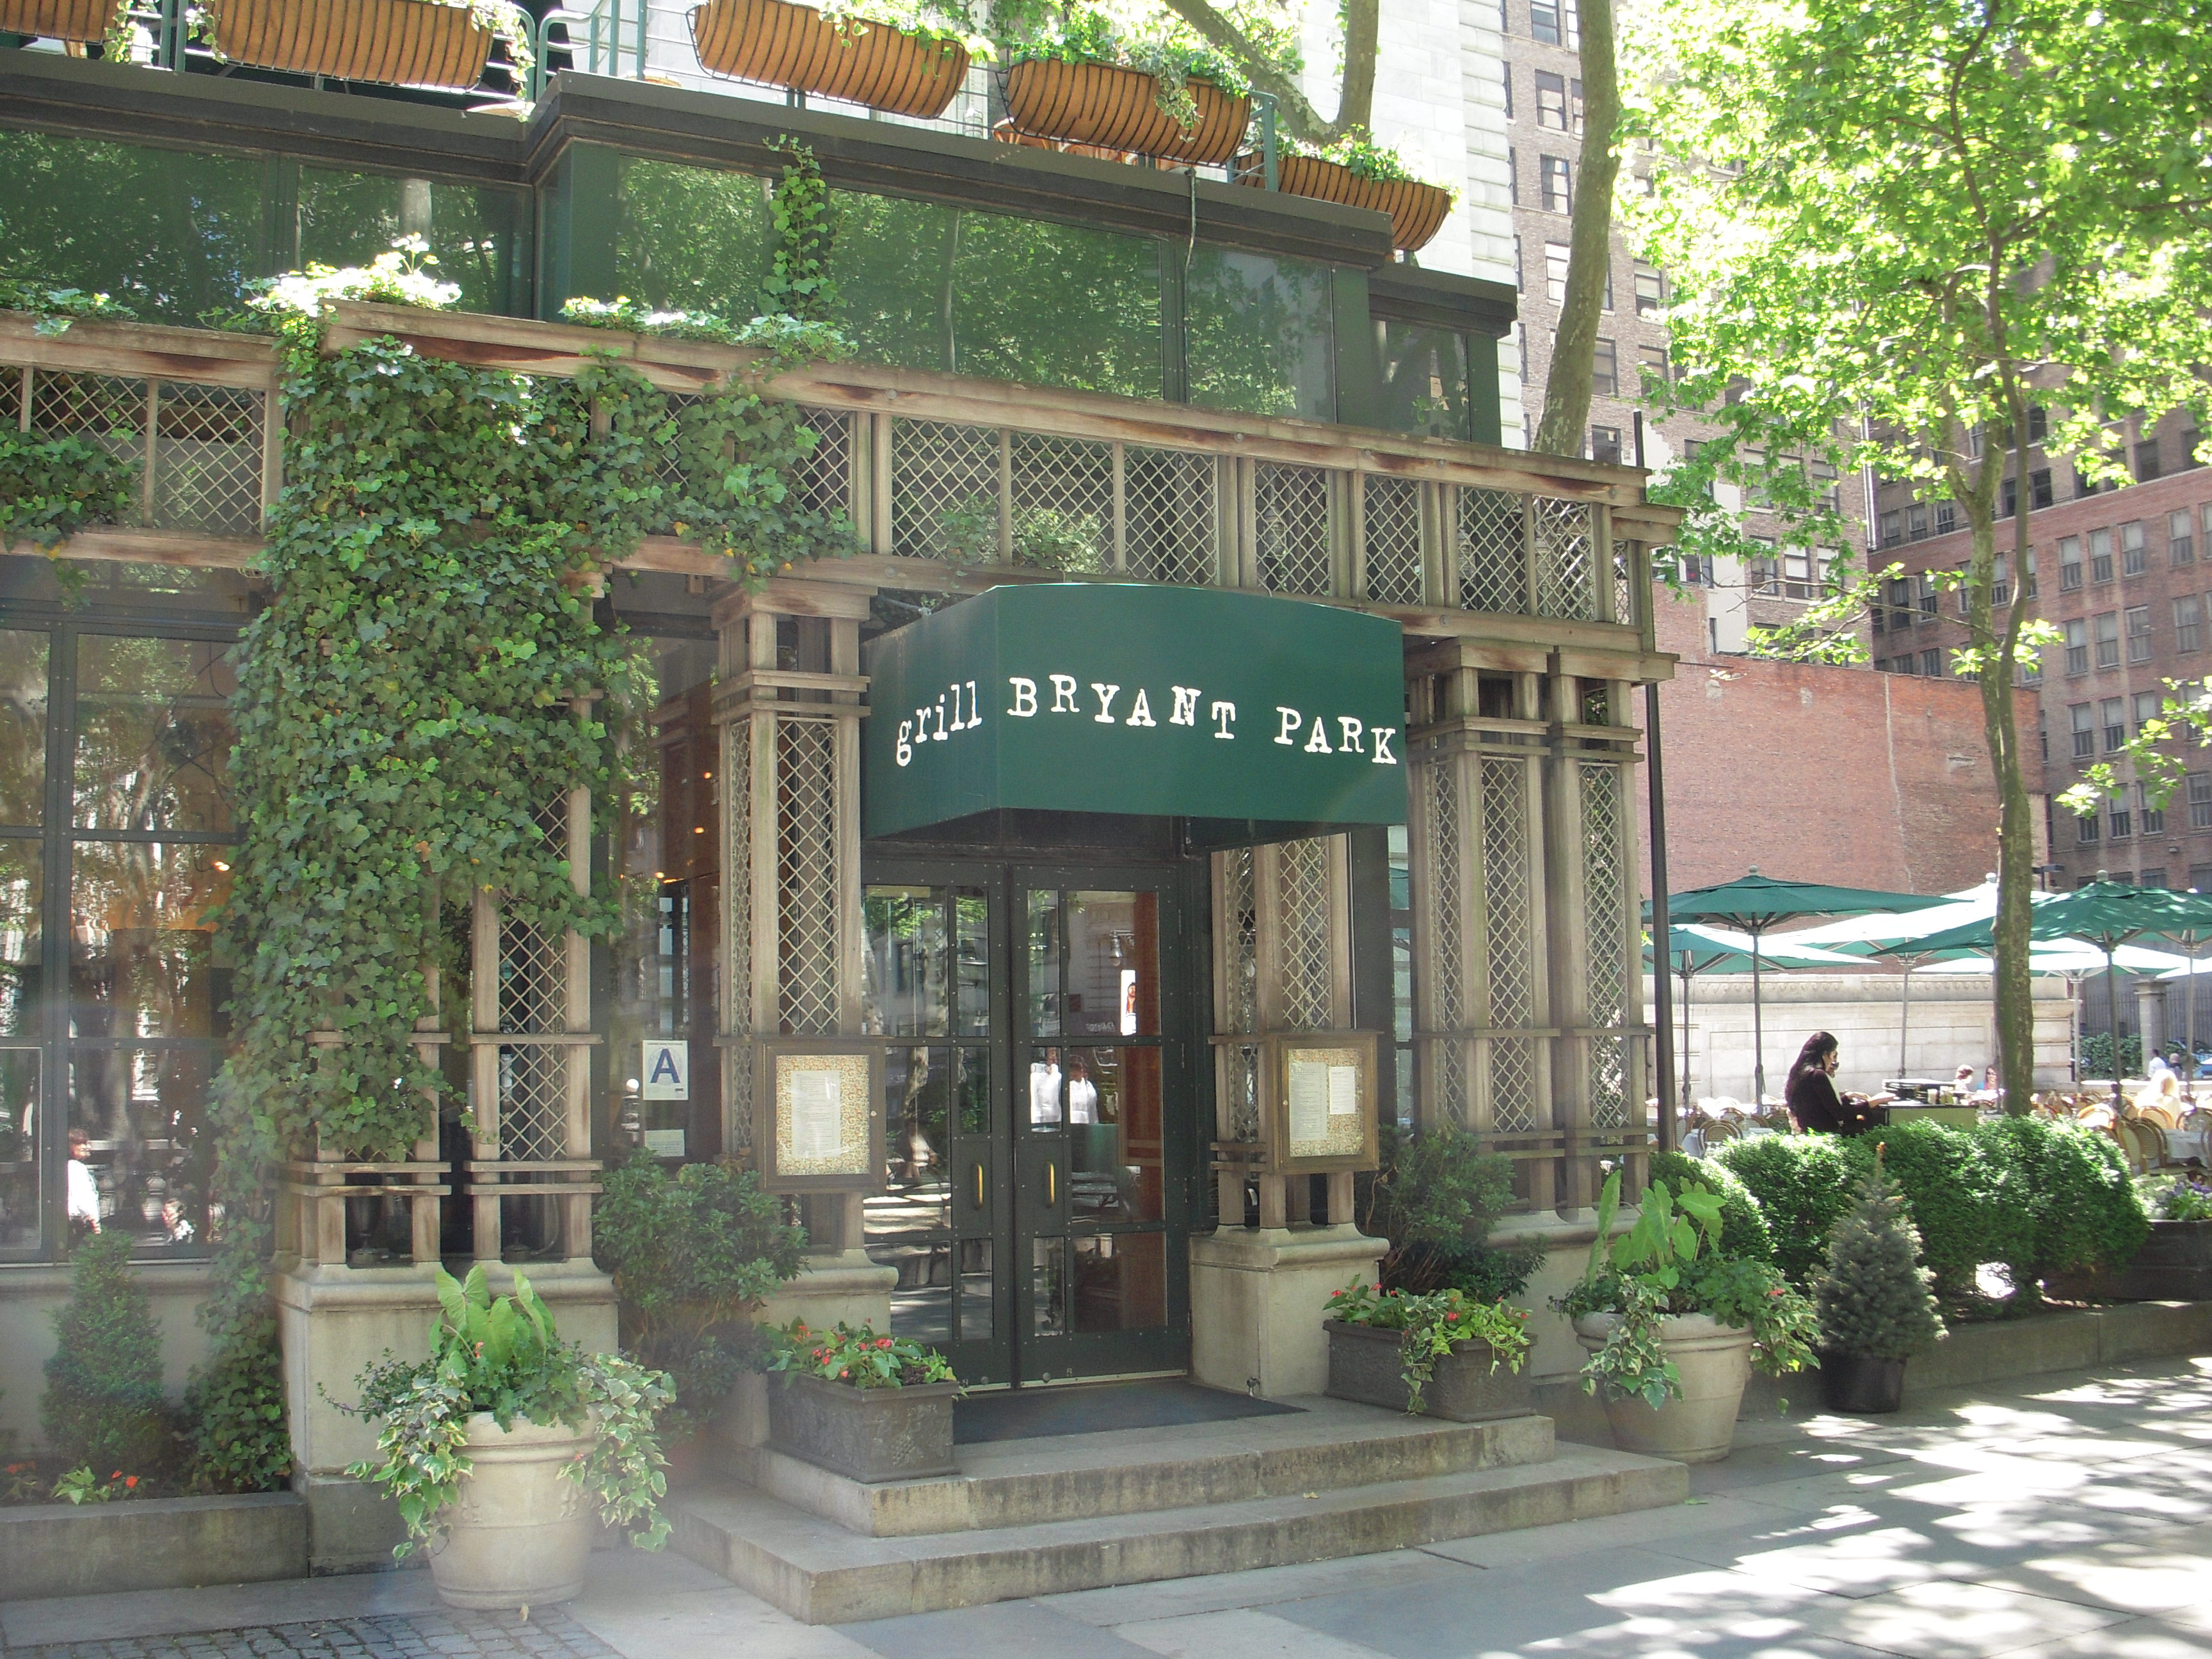 Bryant Park Grill Is A Restaurant That Leans On The More Sophisticated Side With Pricier American Cuisine Than Other Food Venues At